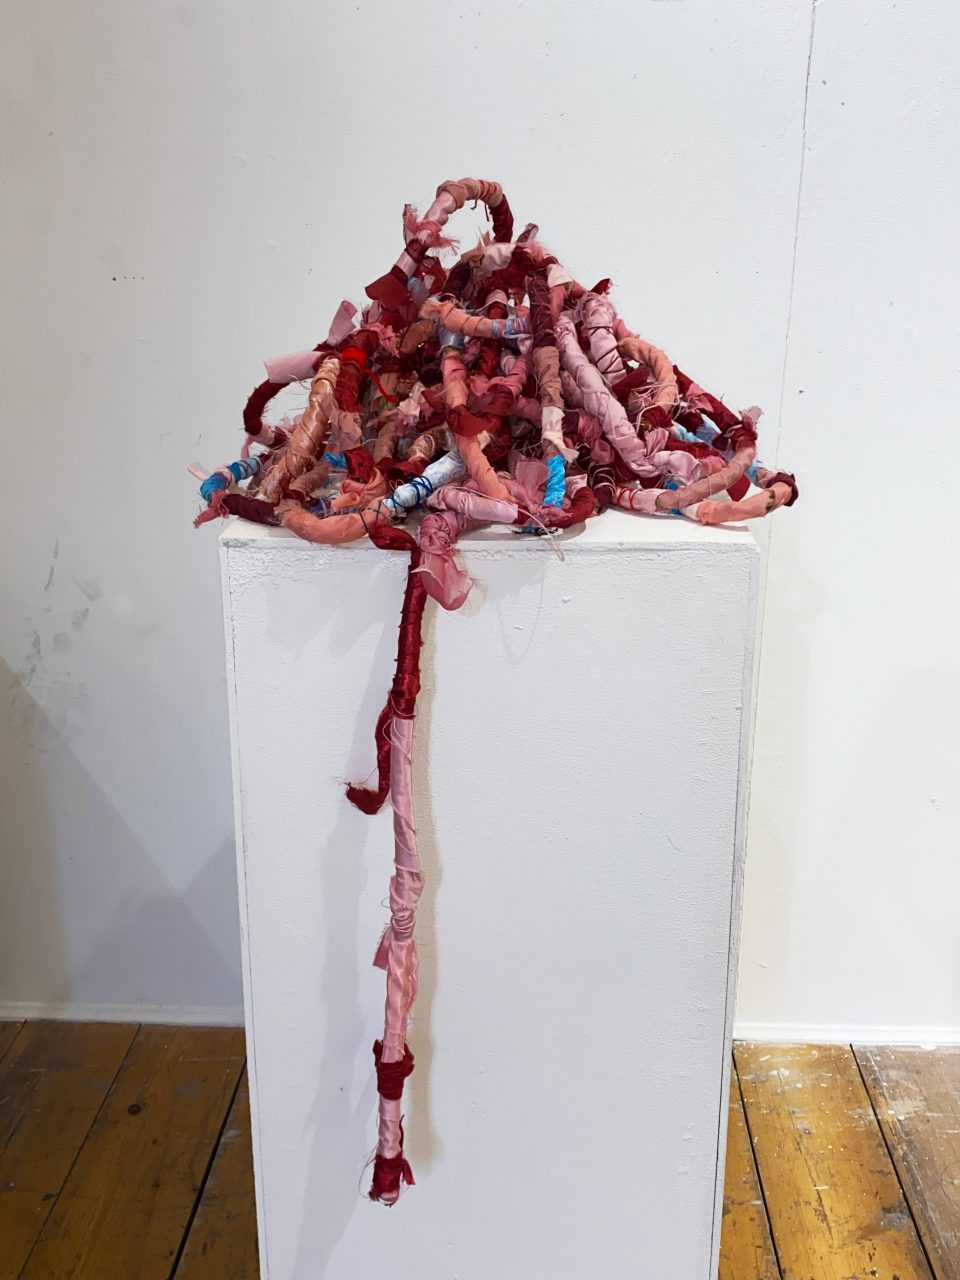 Untitled from 'The cord of connection to the Divine Mother' Series May 2021. Colour photograph of installation (rope and fabric)